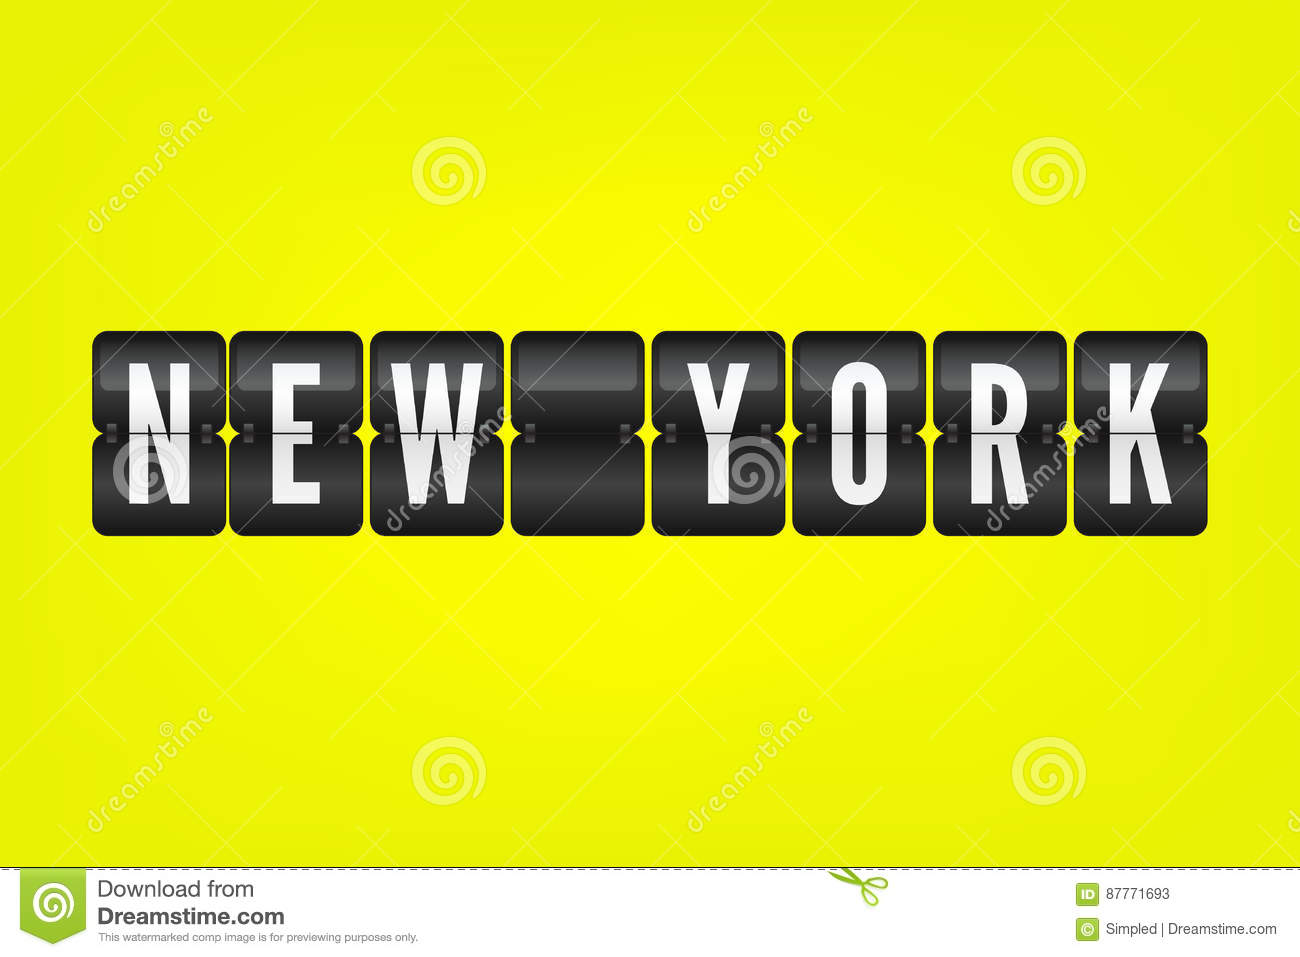 03cdd4a6 New York american city flip symbol. Vector scoreboard illustration. Black  and white airport sign